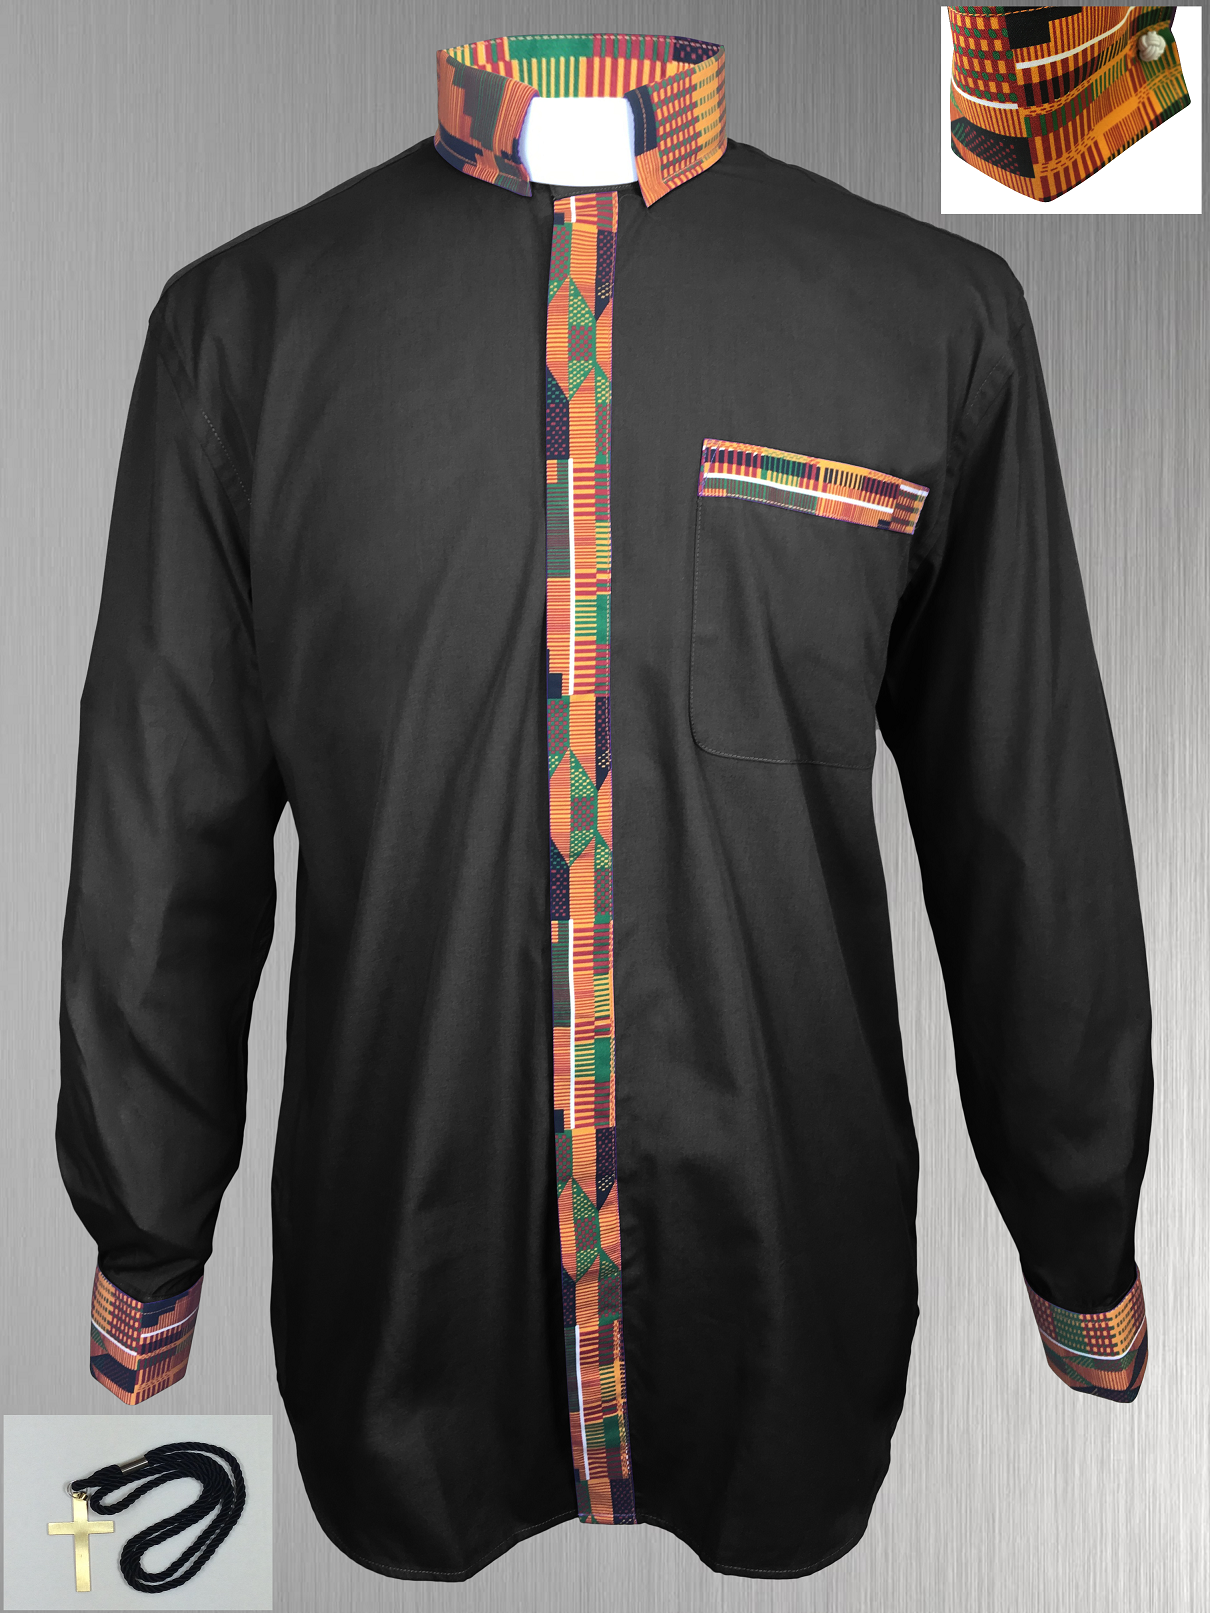 Black Clergy Shirt with Kente Cloth Fabric